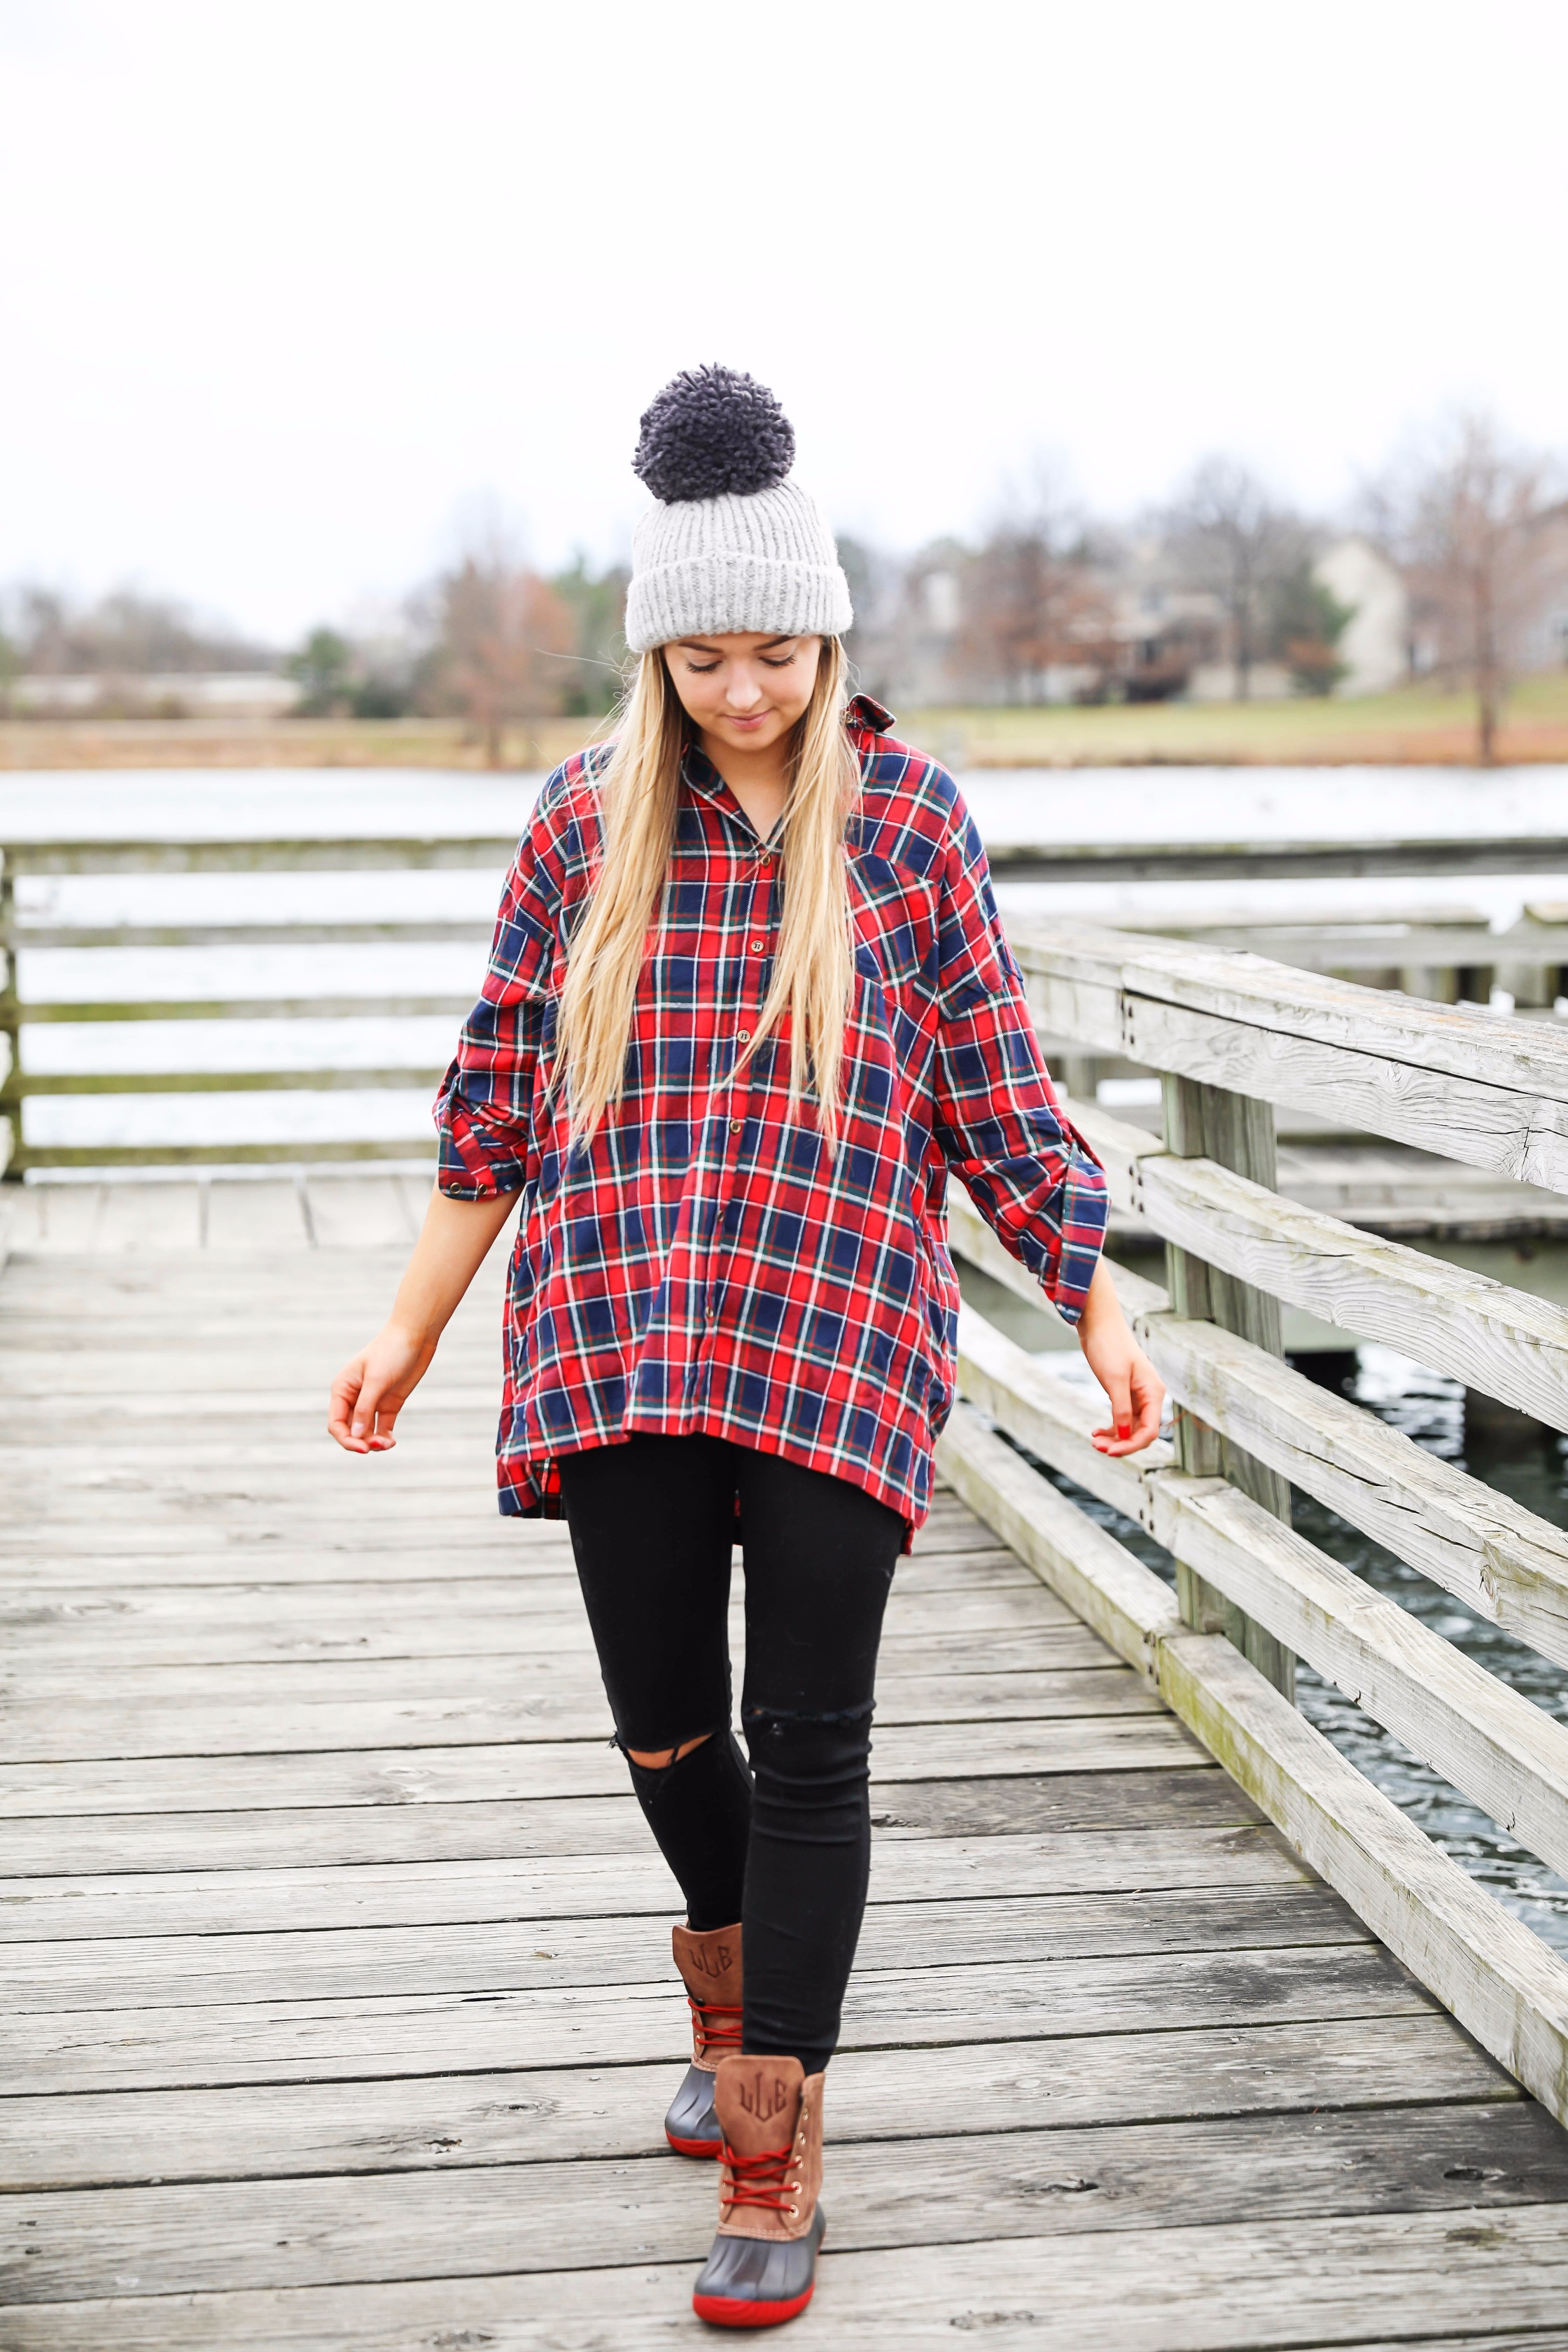 Cute flannel outfit with beanie and monogramed duck boots! Cute fall and winter camping outfit idea! Details on the fashion blog daily dose of charm by lauren lindmark